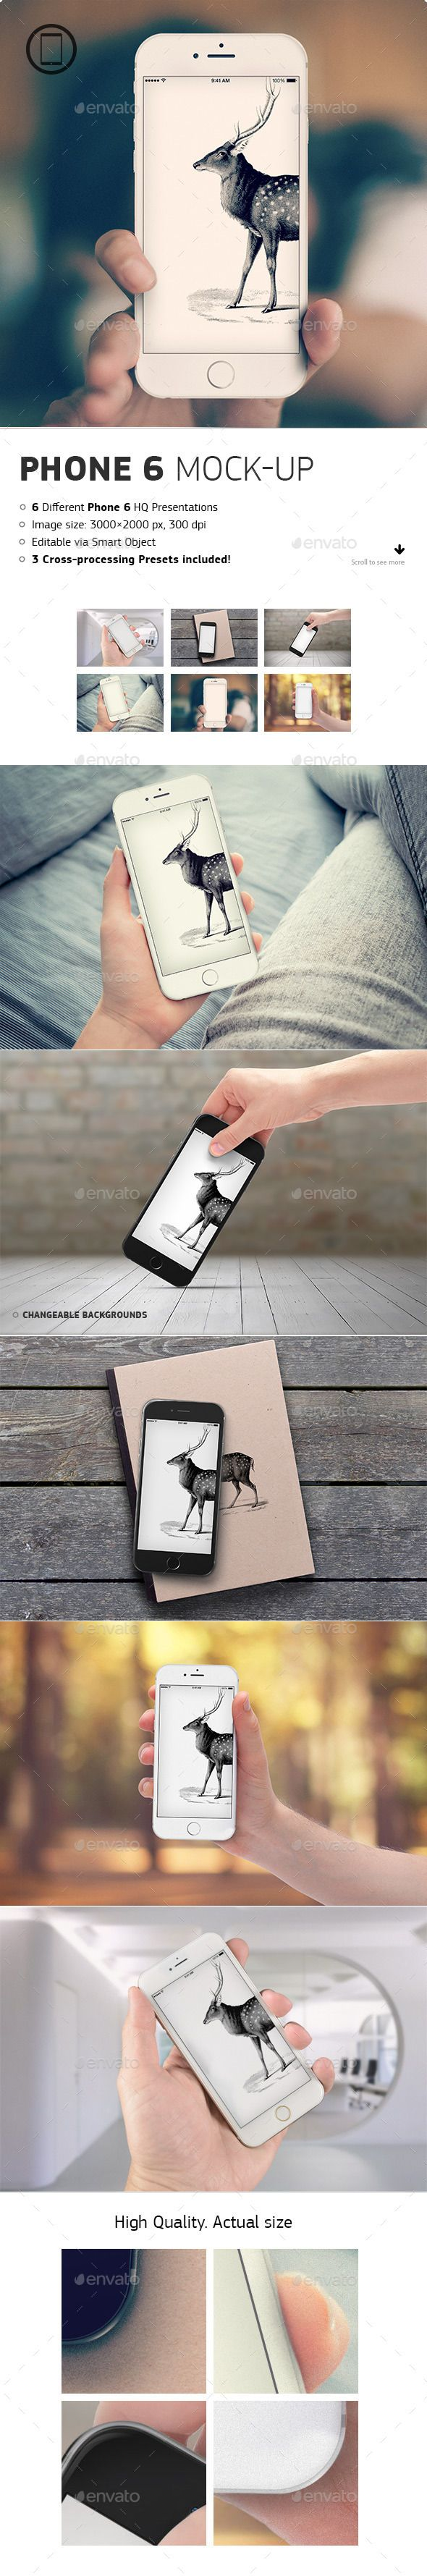 Realistic iPhone 6 Mock-up | #iphone6mockup #iphonemockup | Download: http://graphicriver.net/item/realistic-phone-6-mockup/8893906?ref=ksioks